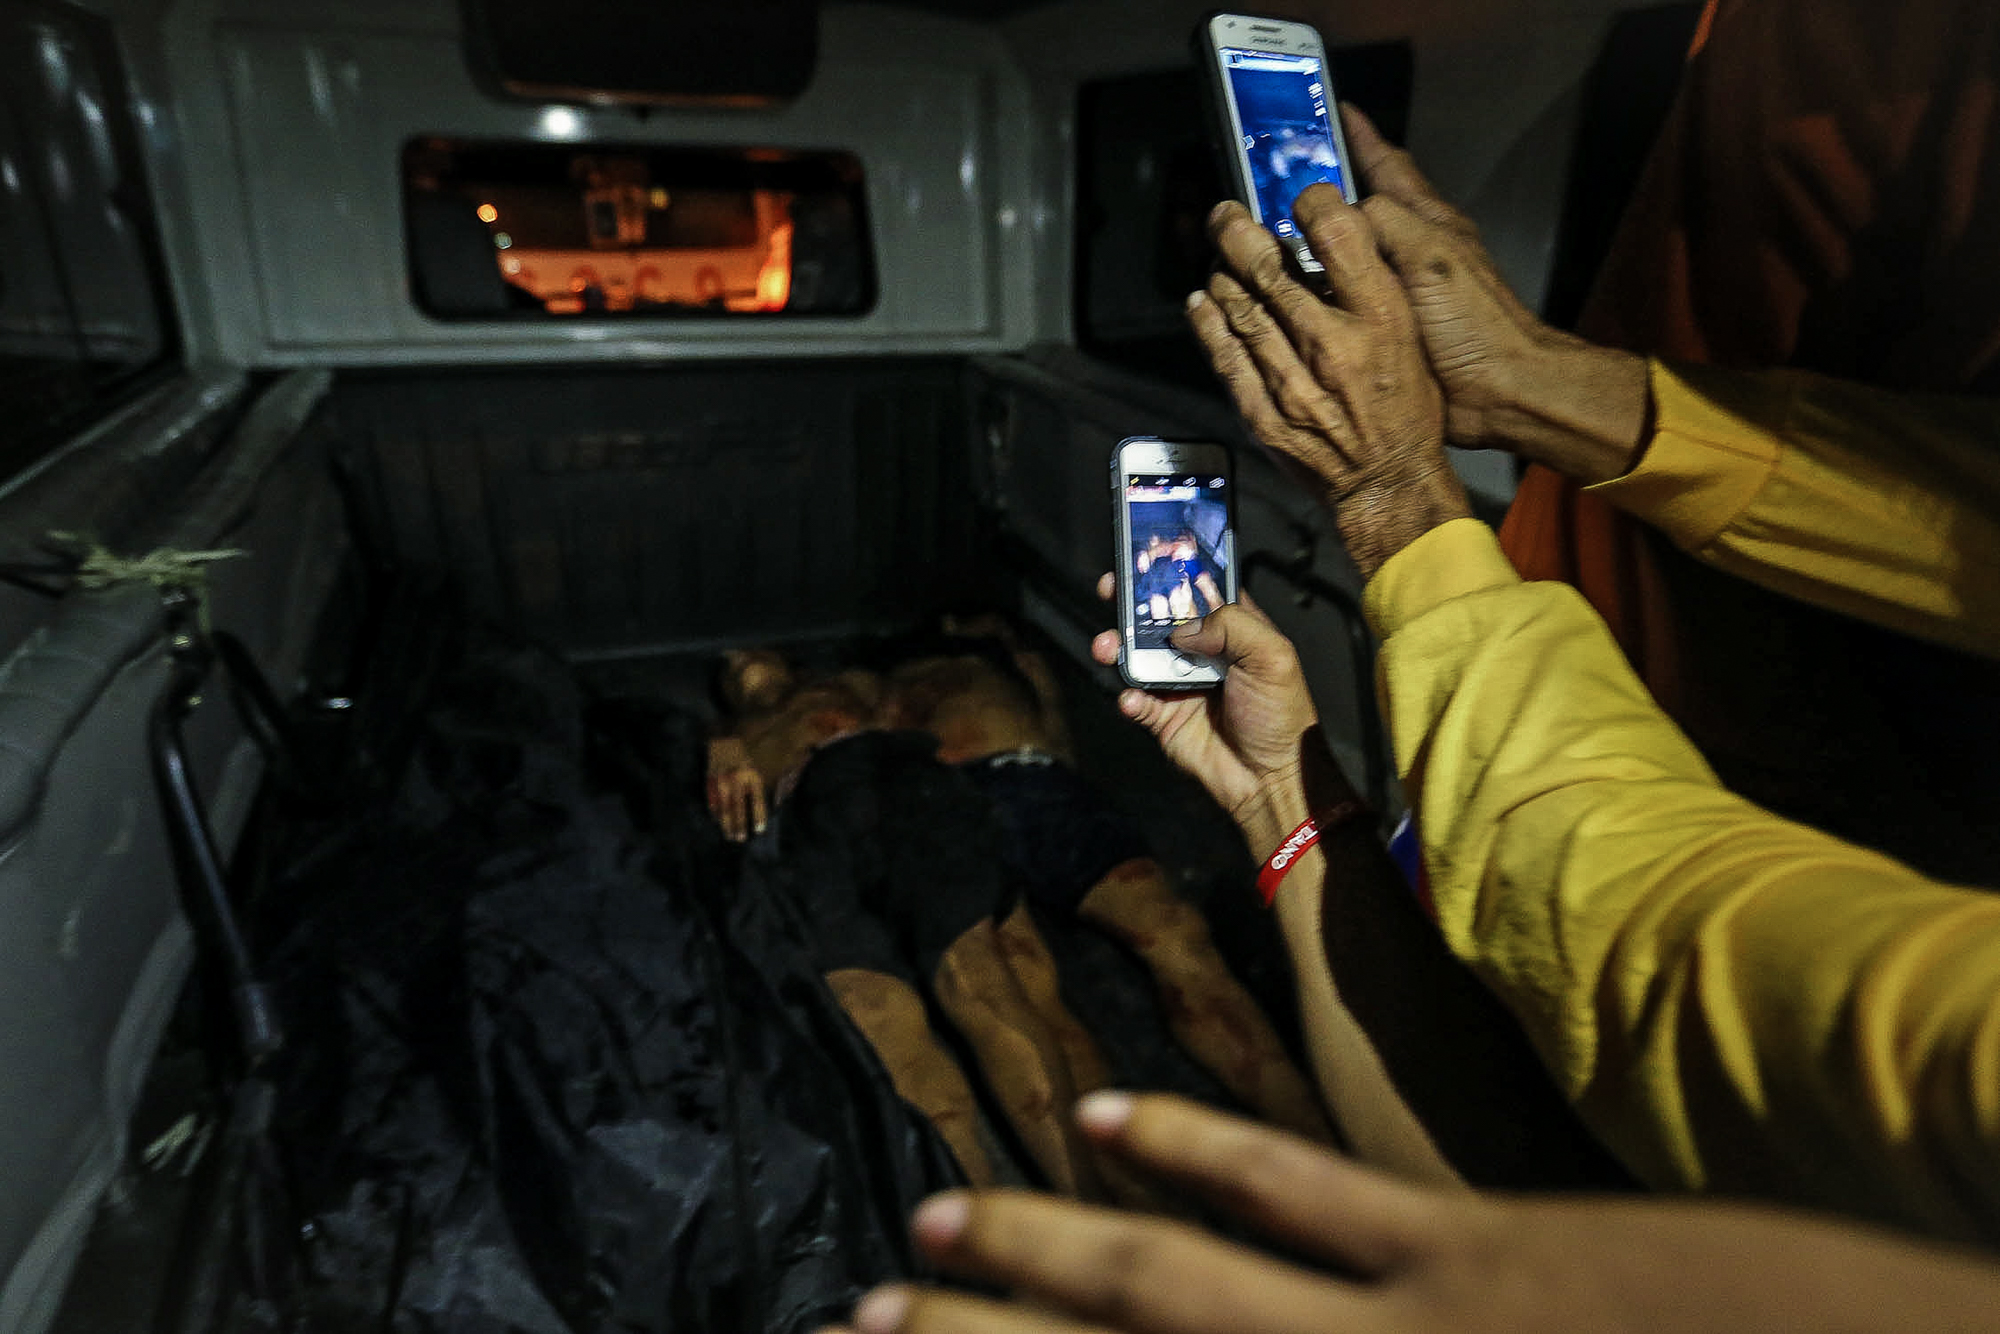 Onlookers take photos of the dead bodies of three alleged drug dealers killed during a buy bust operation in Cahilom corner Apitong St., Barangay 872, Pandacan, Manila on July 16, 2016.